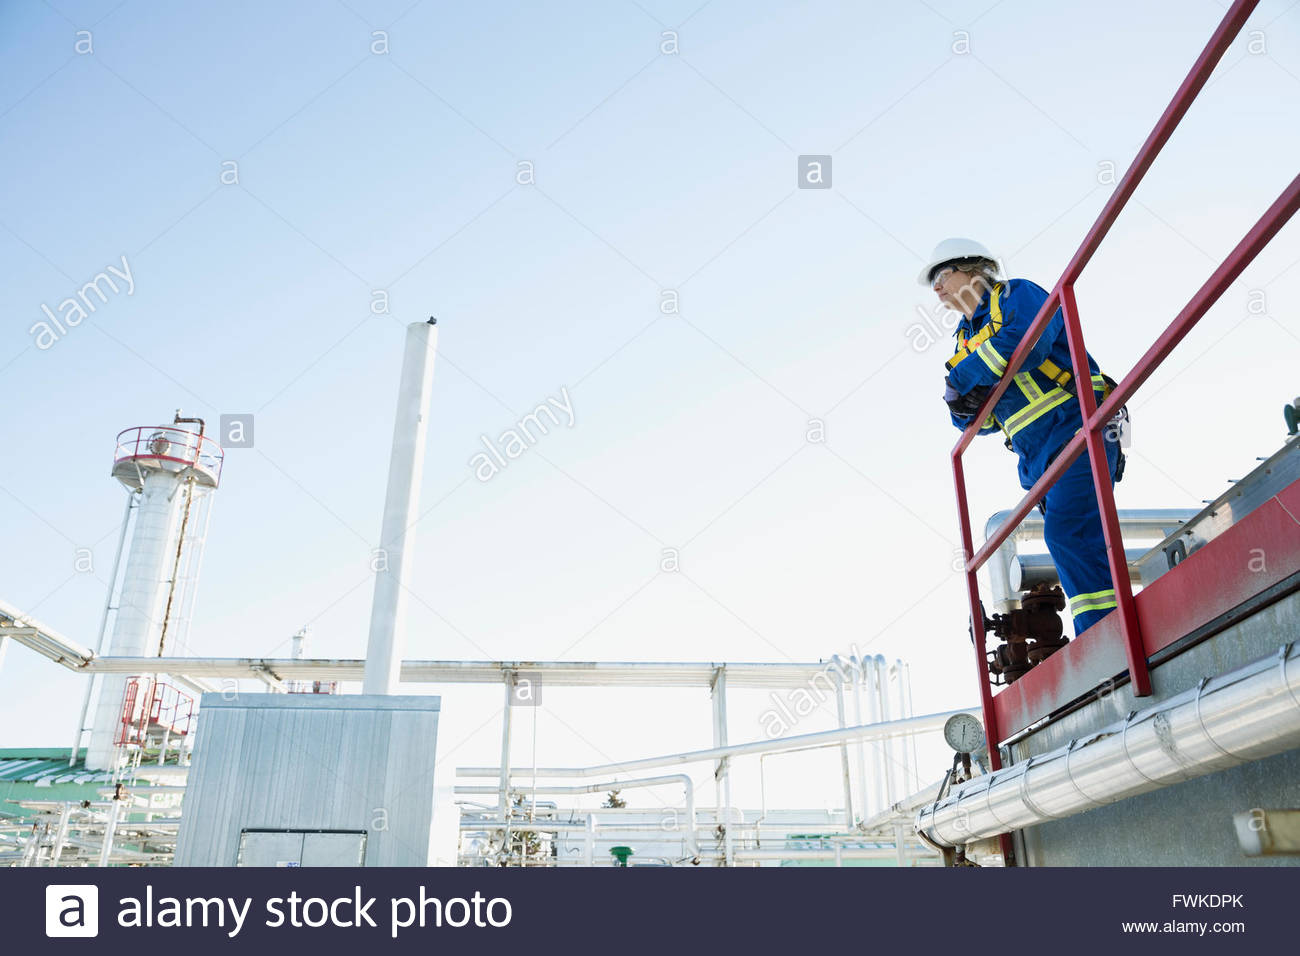 Female worker on platform overlooking gas plant - Stock Image